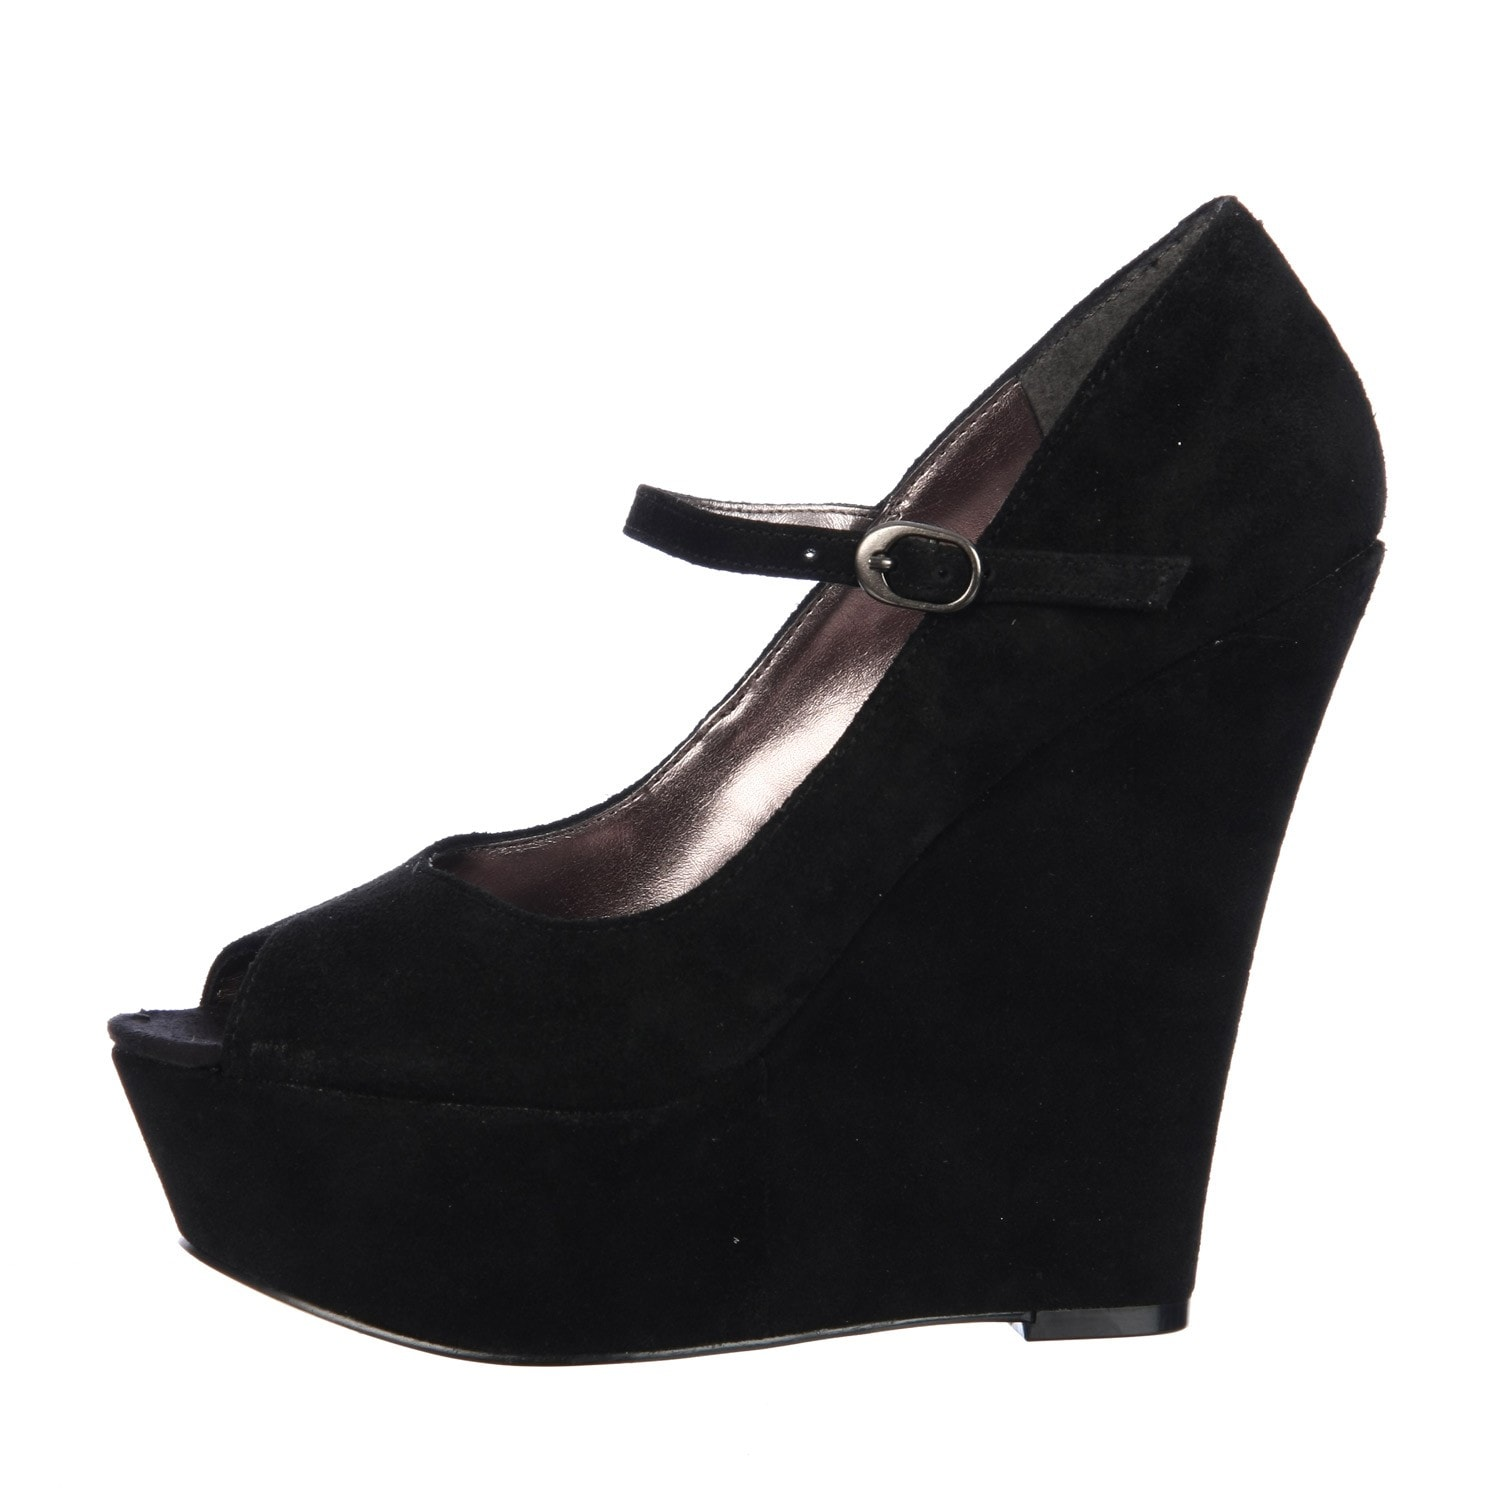 1cfa9a8cfdd Shop Steve Madden Women s  P-Sofiaa  Black Suede Mary Jane Wedges - Free  Shipping Today - Overstock - 6023630